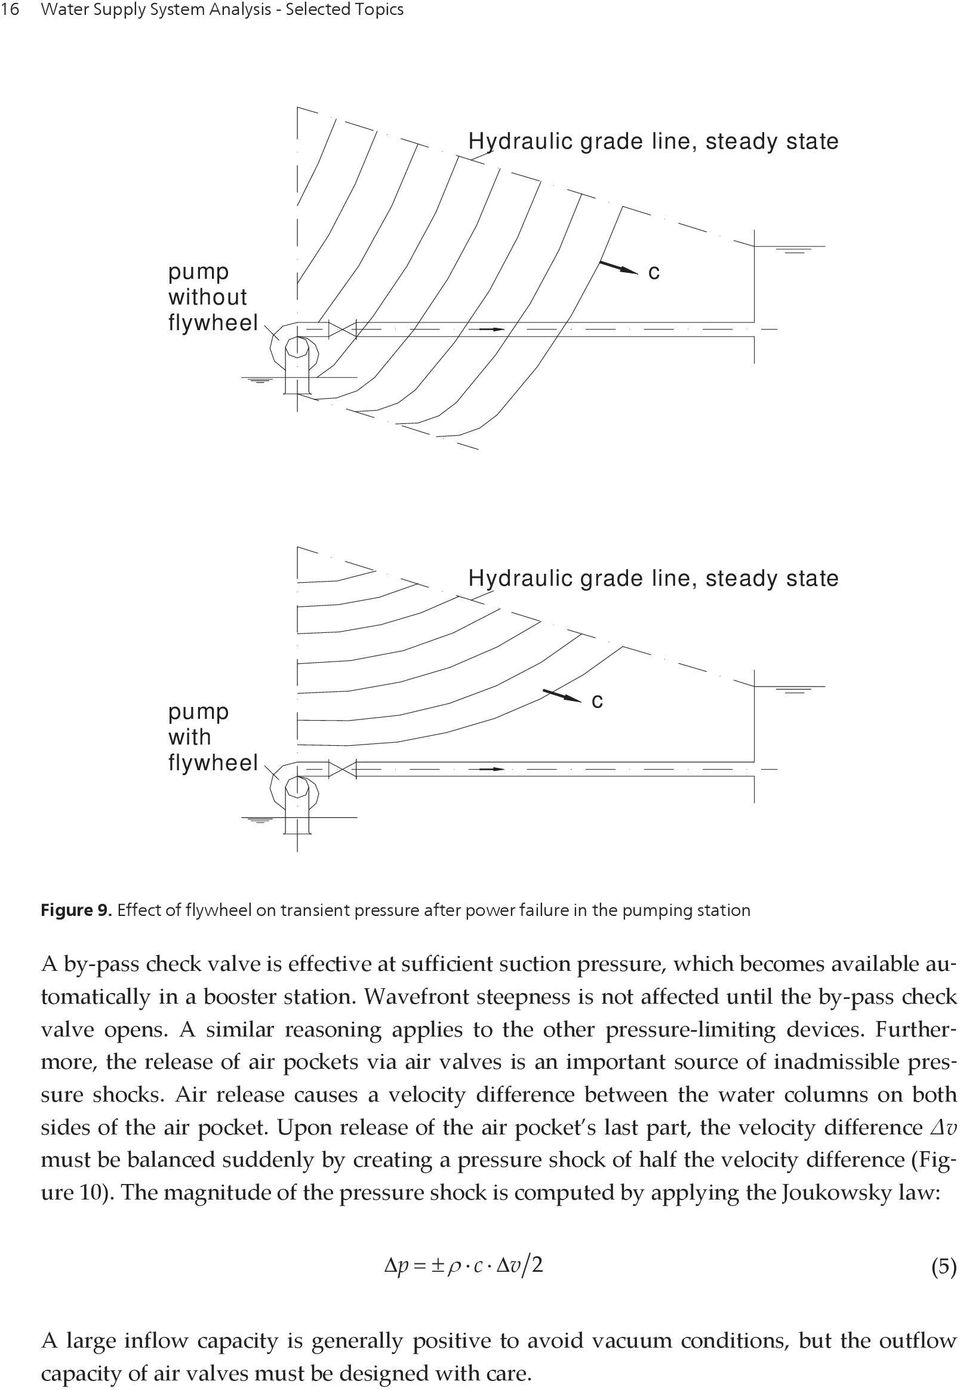 Guidelines For Transient Analysis In Water Transmission And Diagram Furthermore Rv Freshwater System On Line Booster Station Wavefront Steepness Is Not Affected Until The By Pass Check Valve Opens